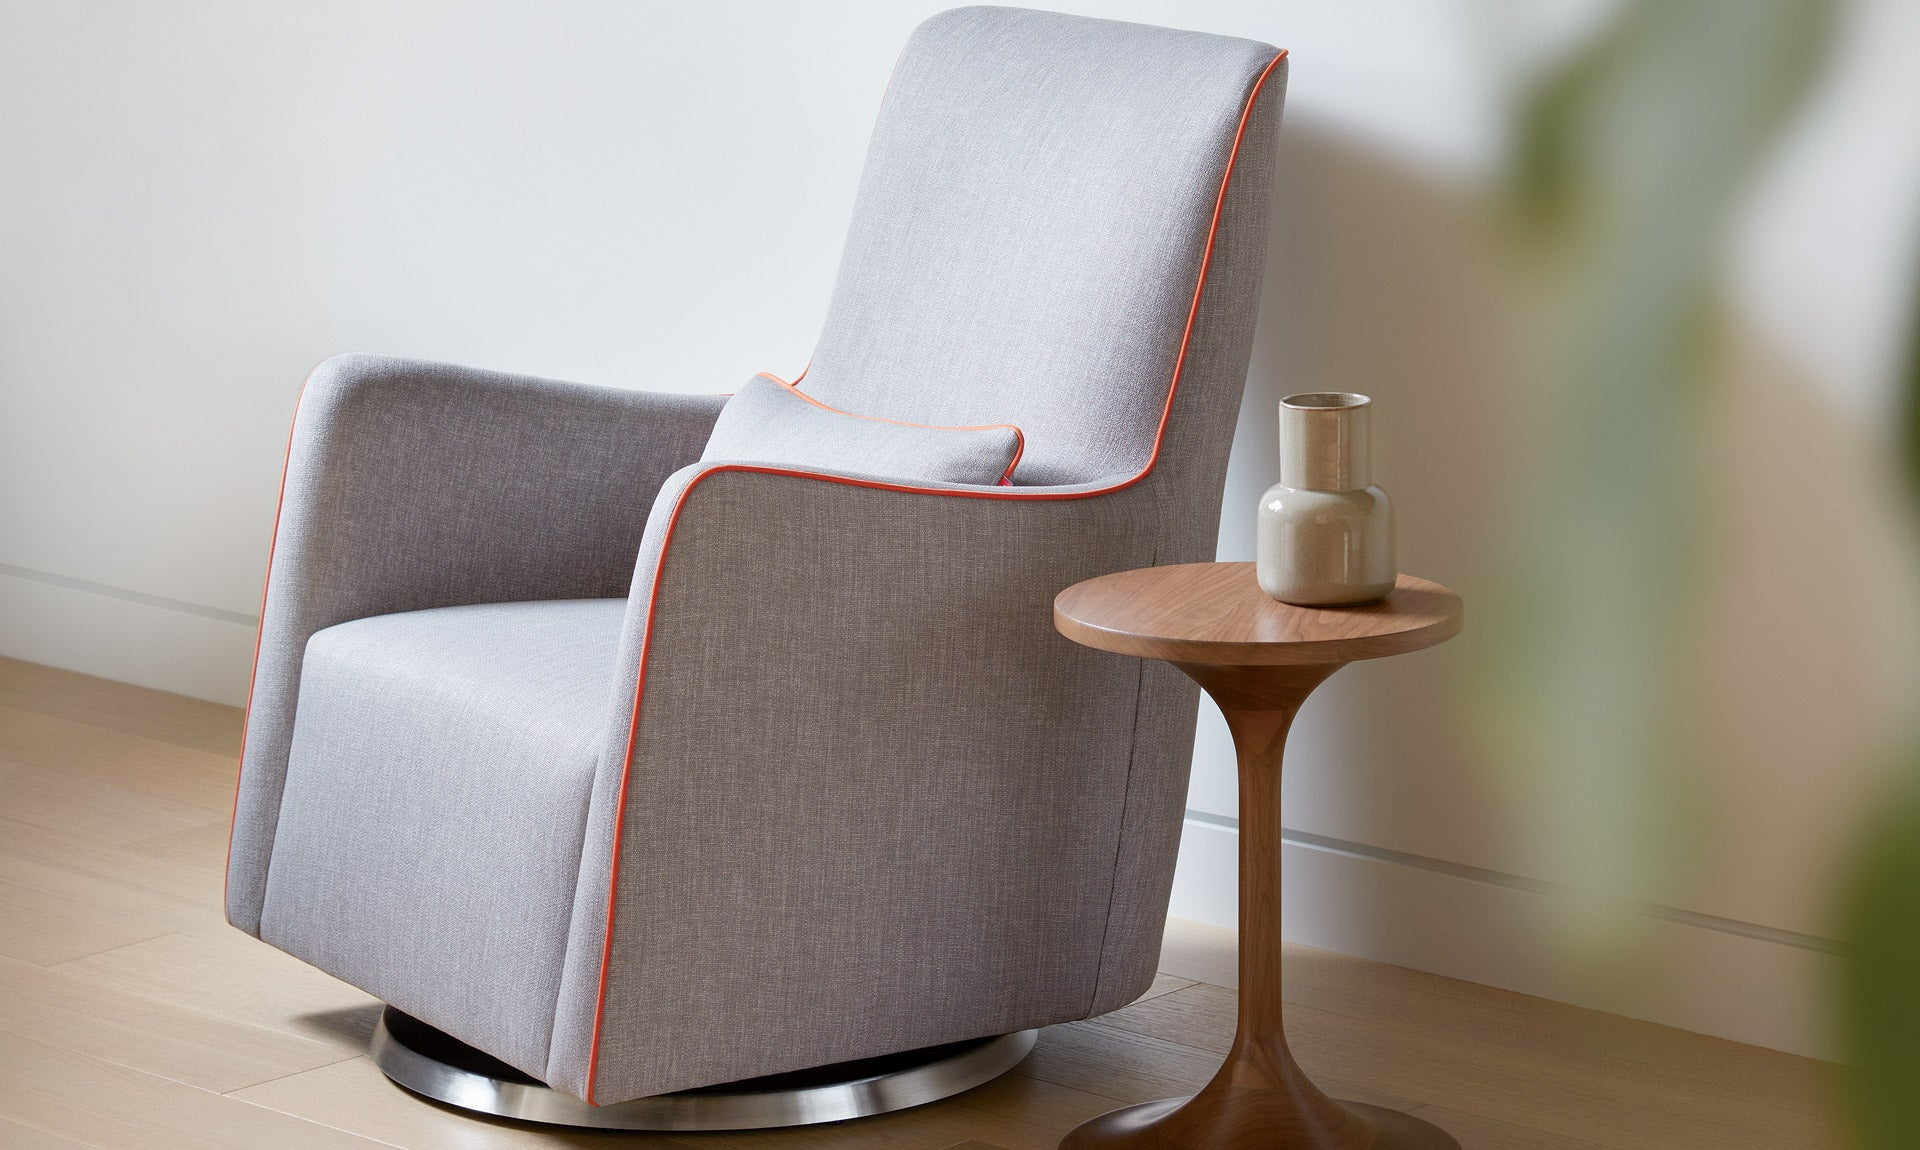 Modern Duo Side Table